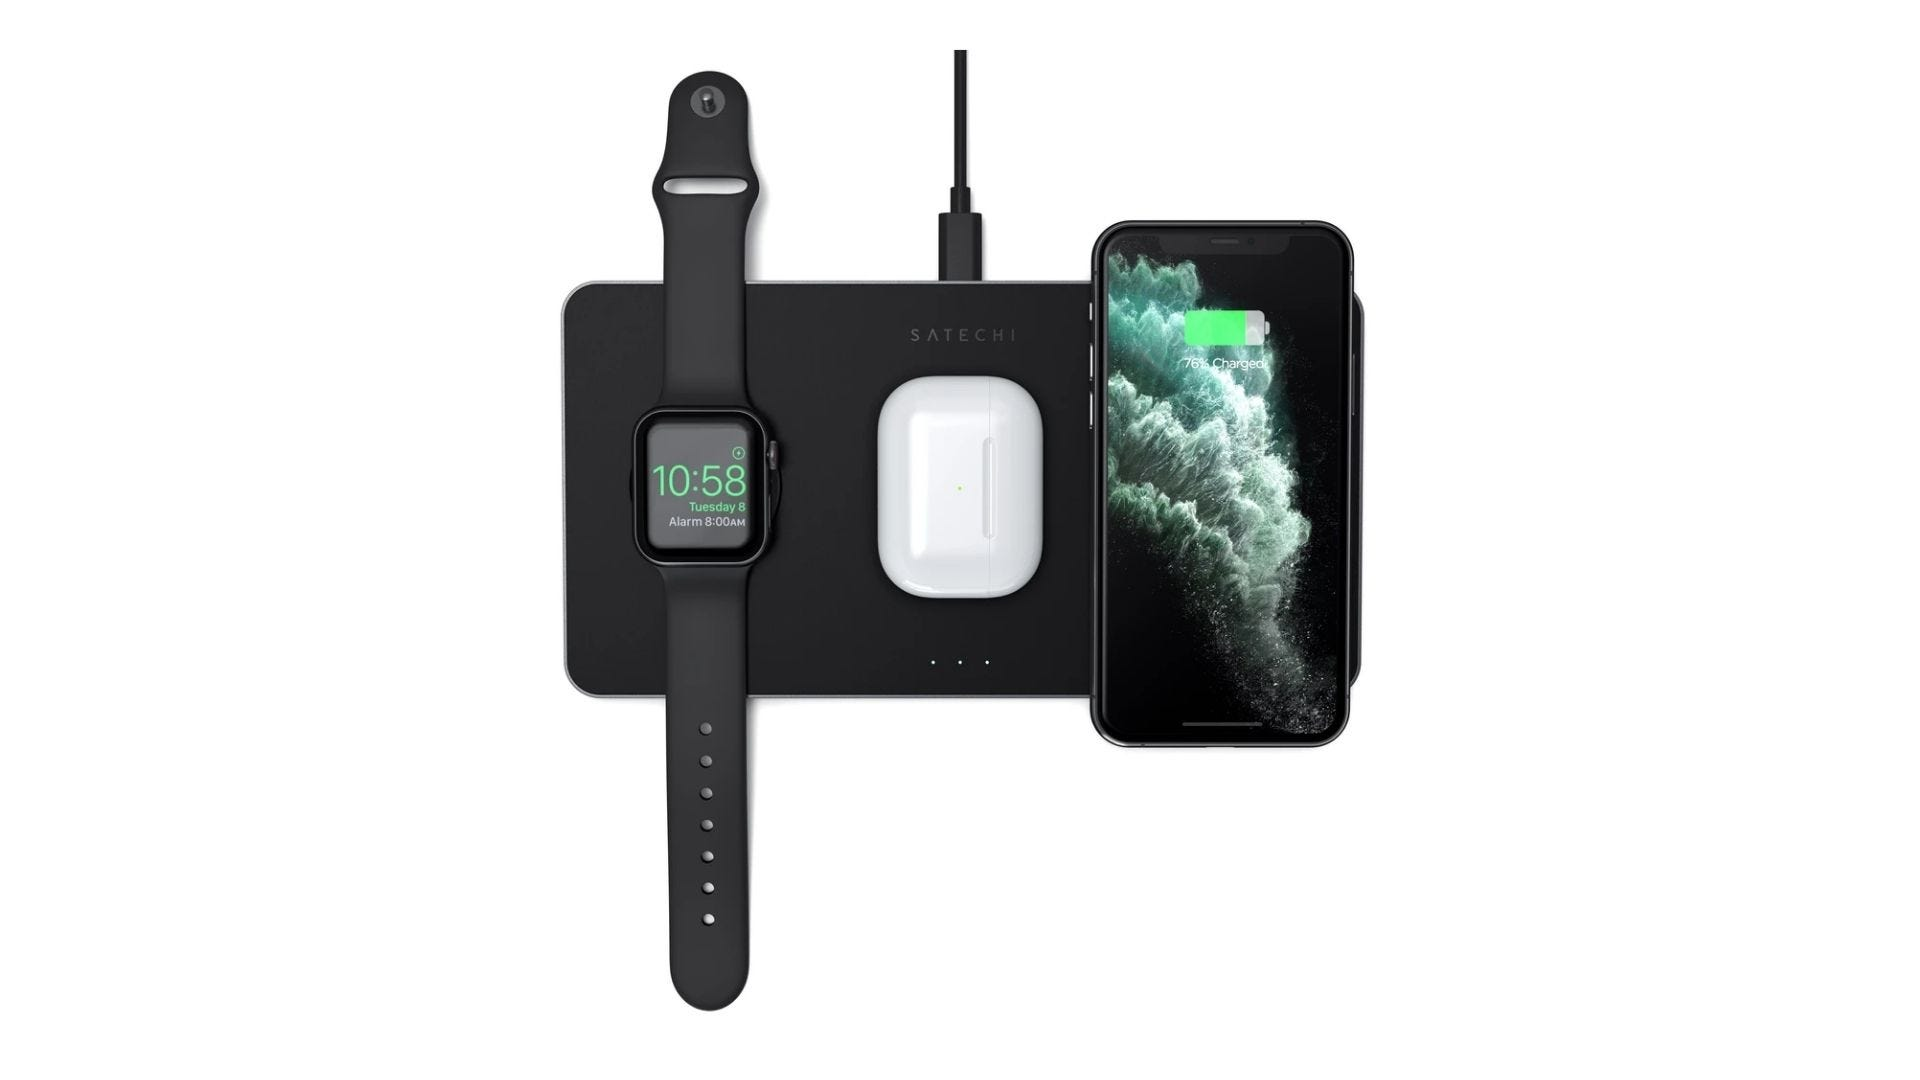 trio wireless charging pad from satechi